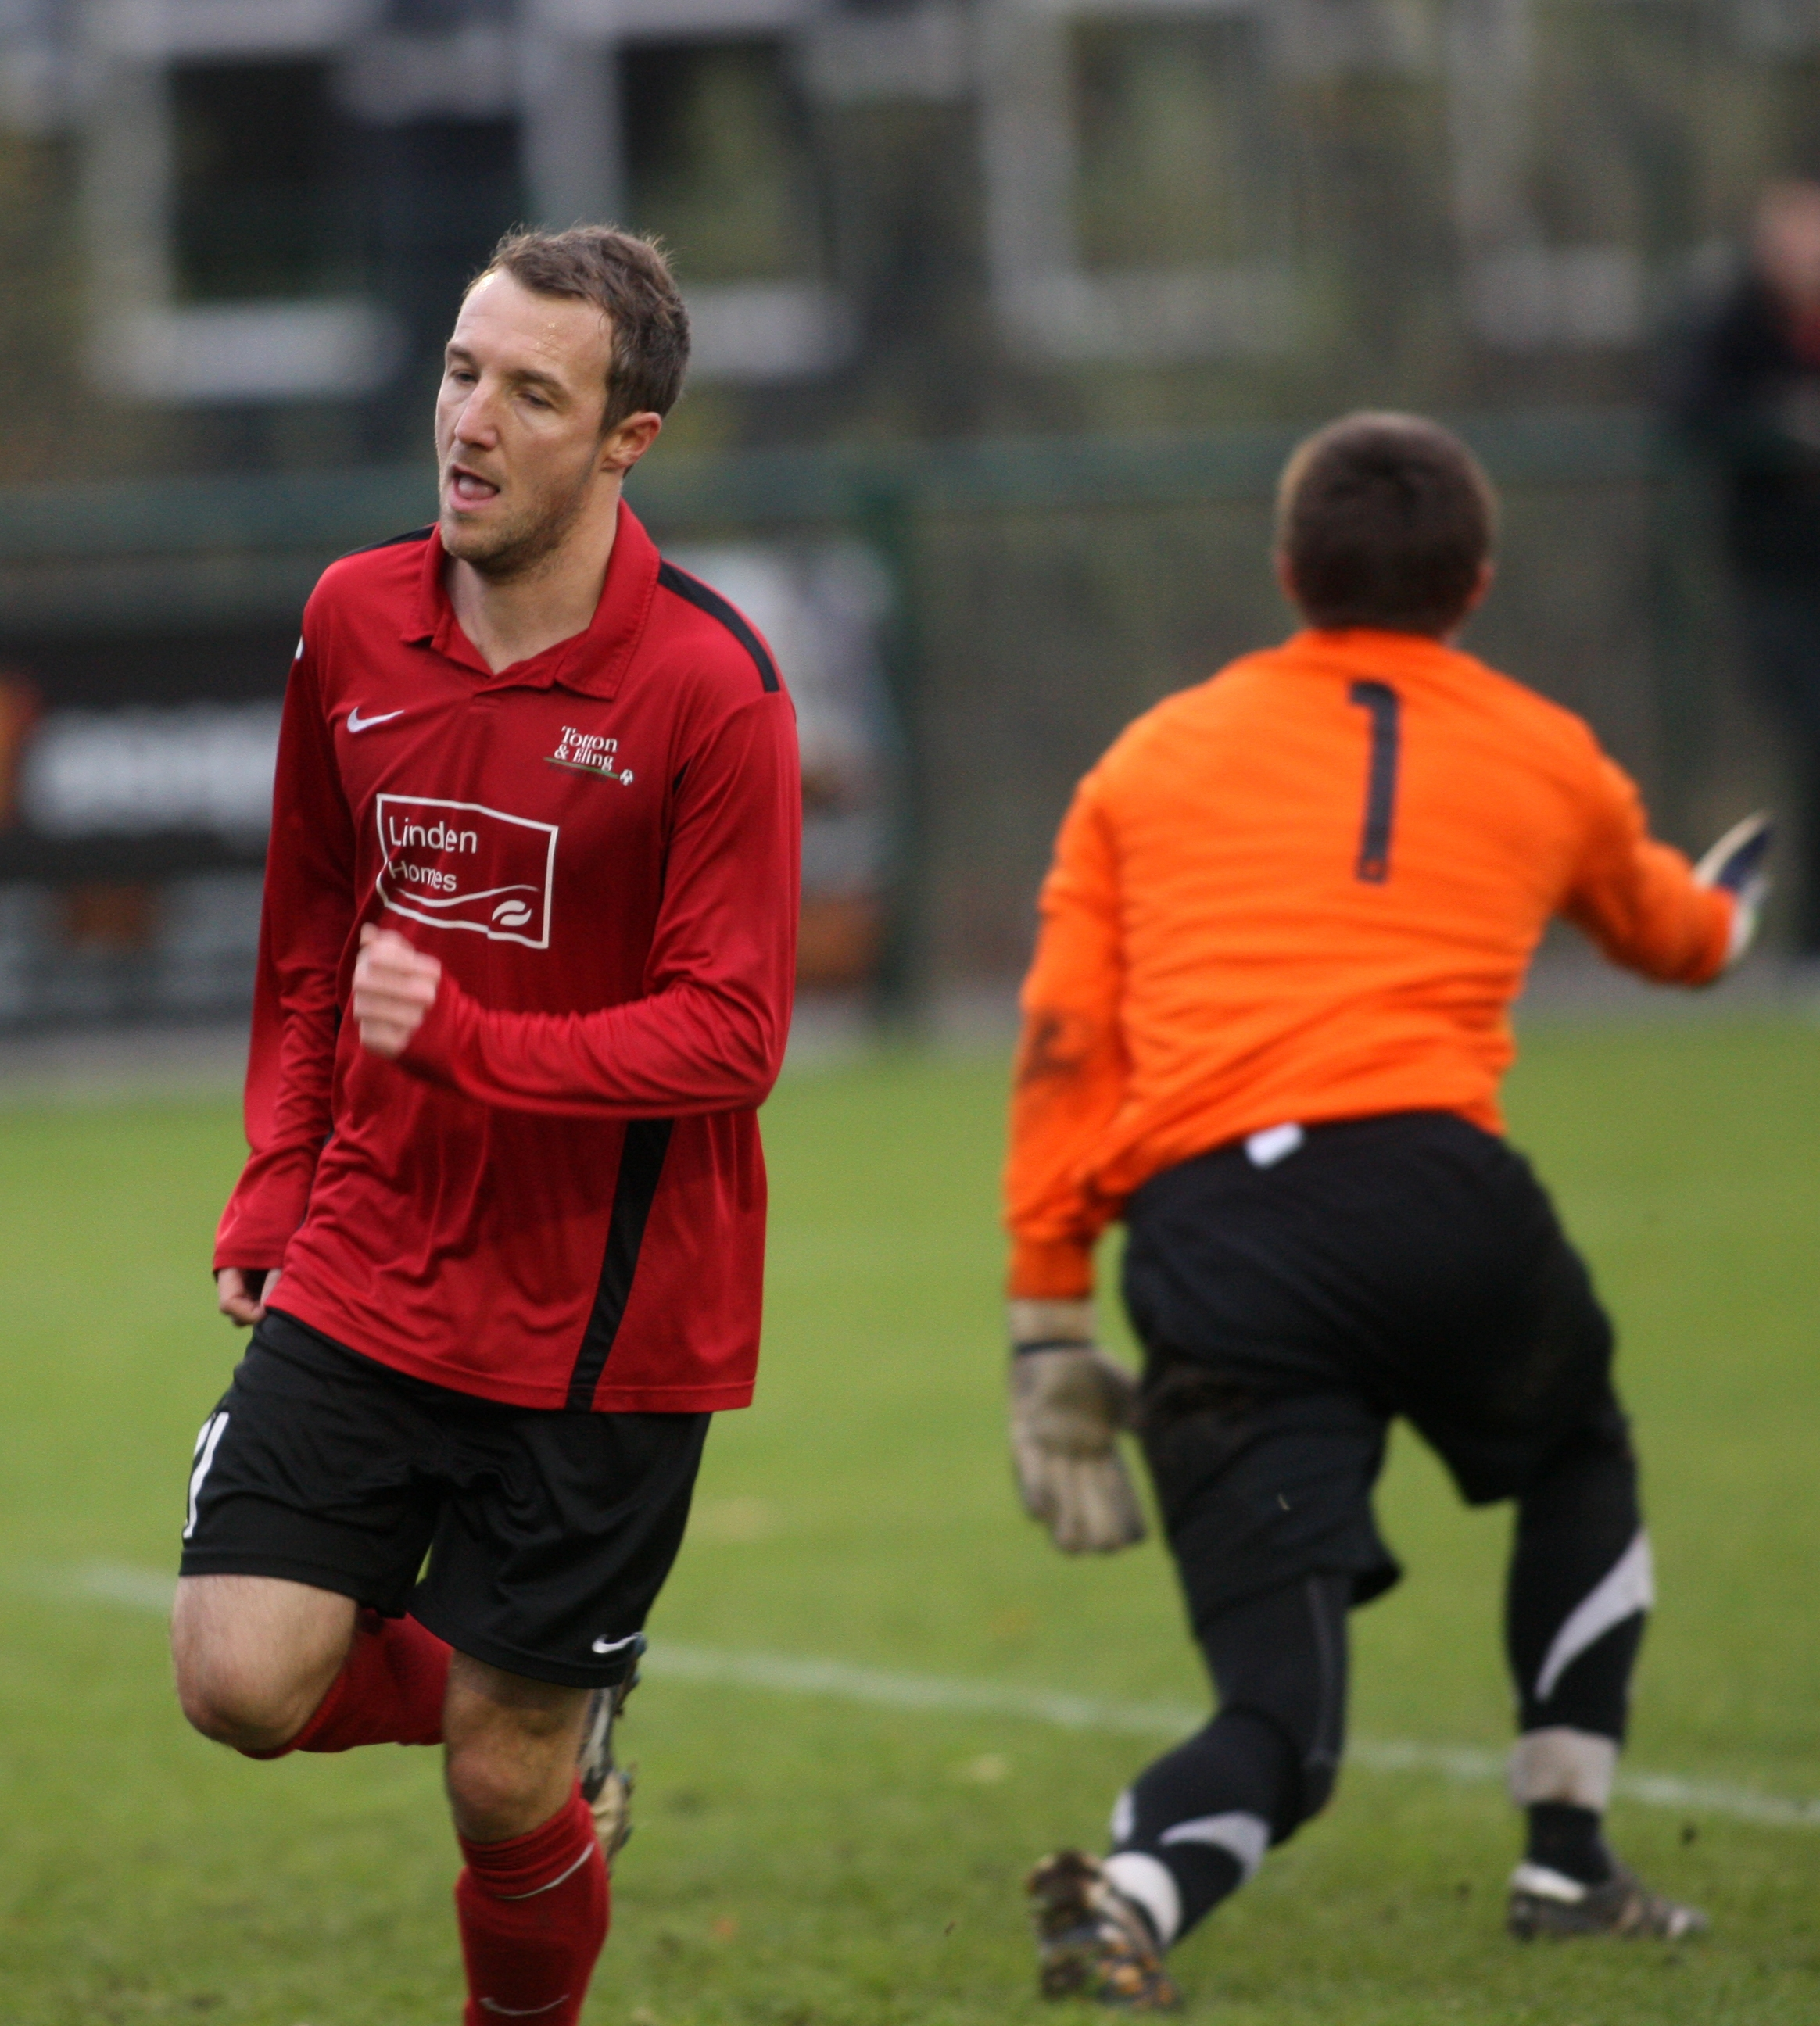 Steve Jenkin scored Stoneham's leveller against Locks Heath